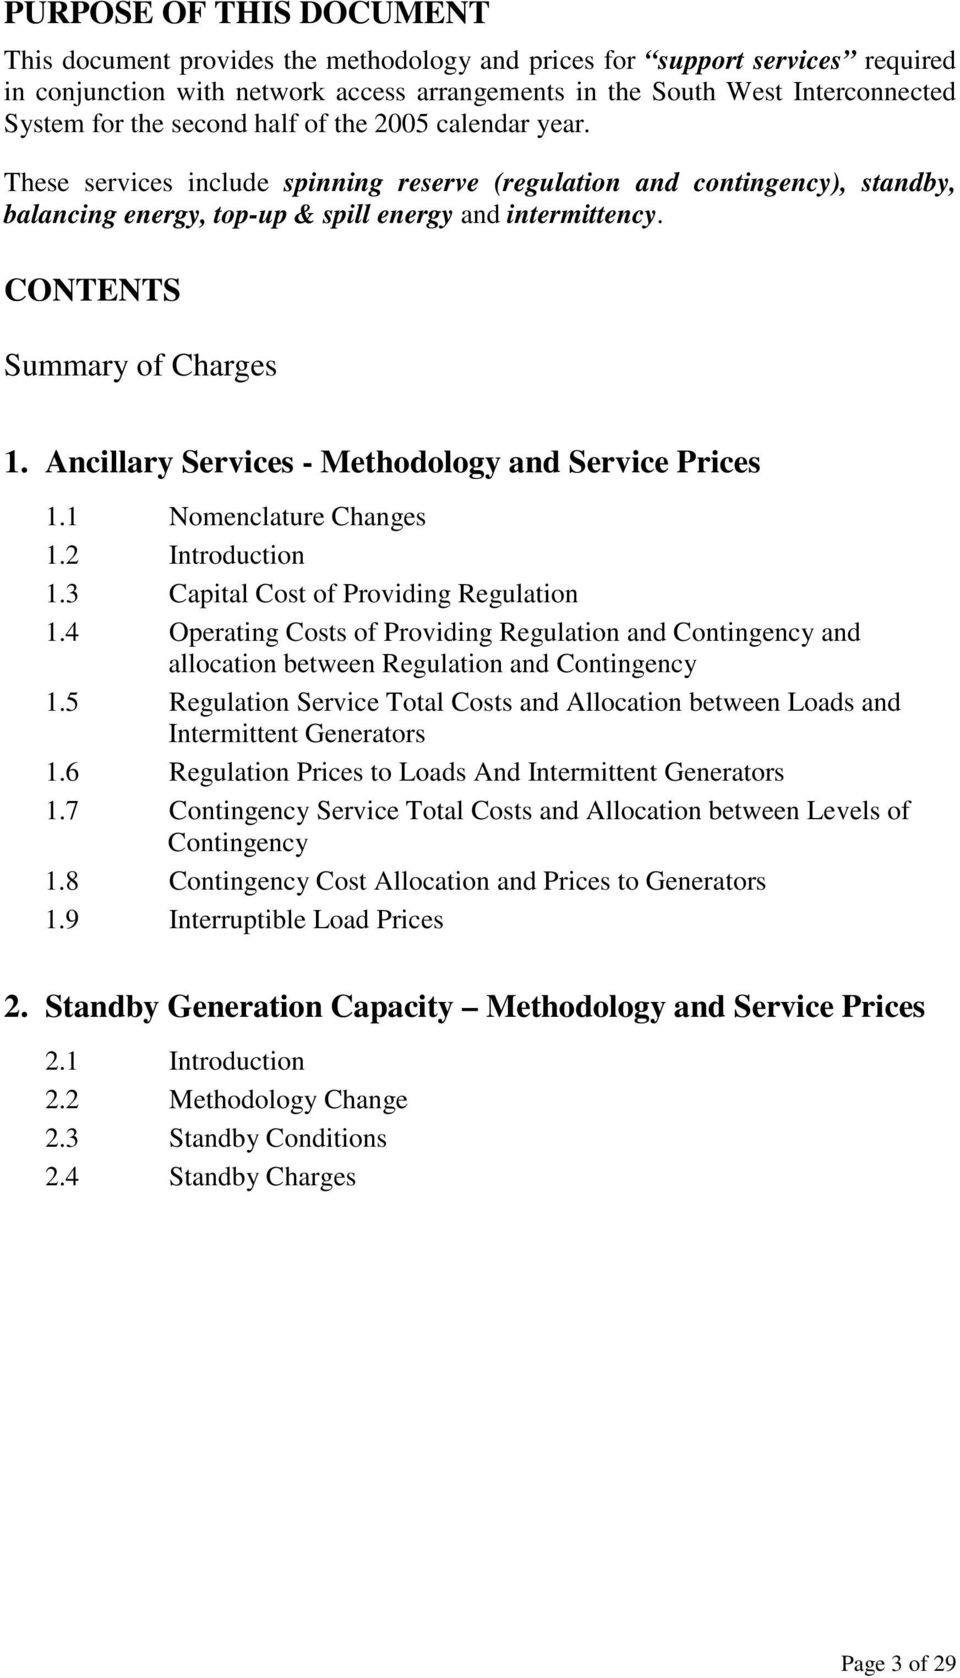 CONTENTS Summary of Charges 1. Ancillary Services - Methodology and Service Prices 1.1 Nomenclature Changes 1.2 Introduction 1.3 Capital Cost of Providing Regulation 1.